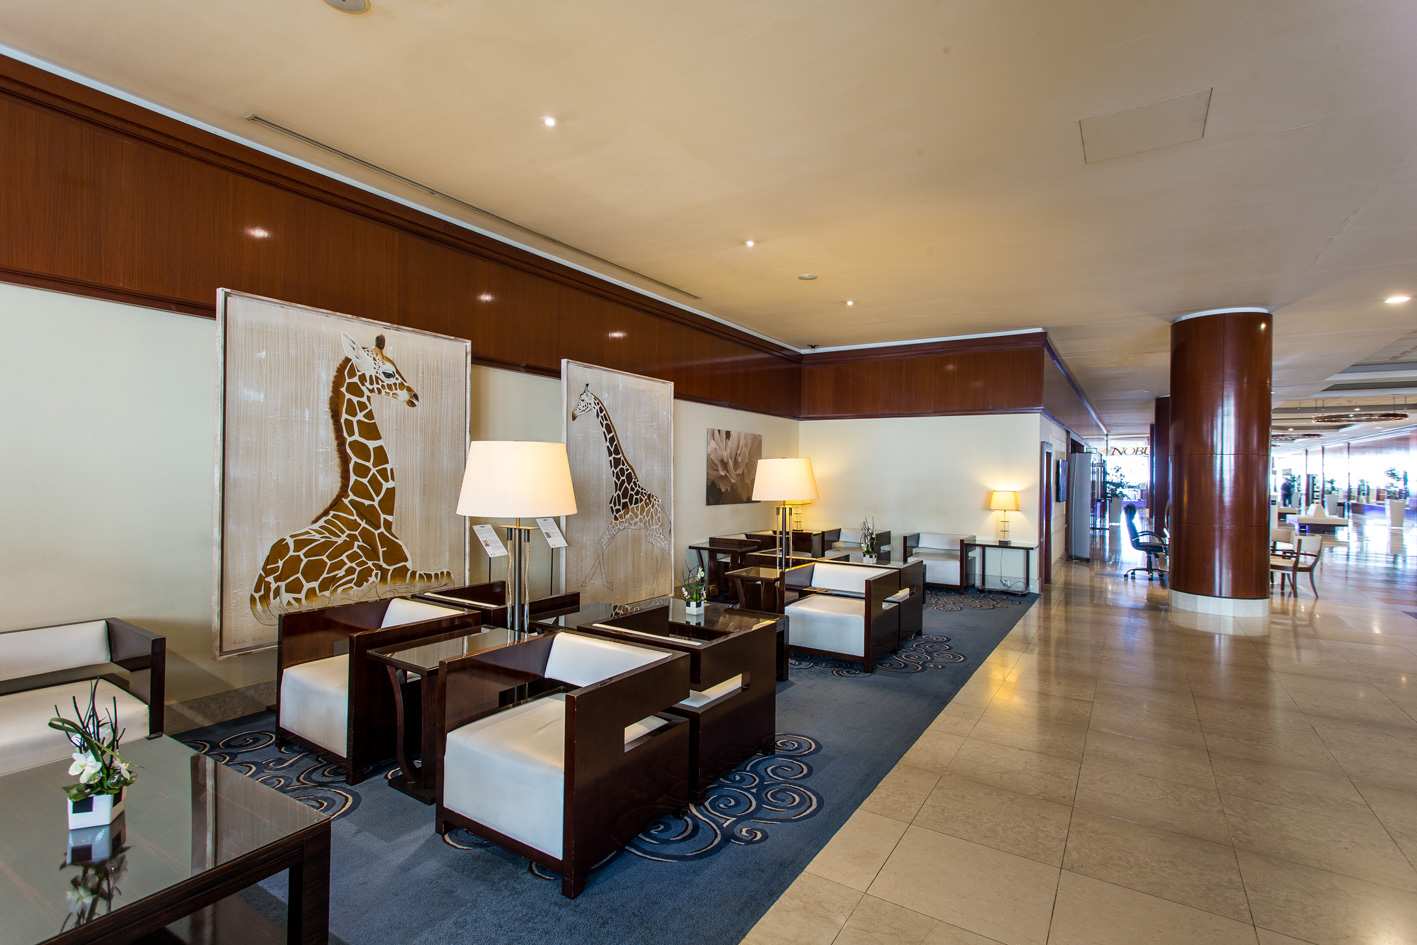 HOTEL FAIRMONT MONACO animal-painting-giraffe-rothschid-threatened-endangered-extinction Animal painting by Thierry Bisch pets wildlife artist painter canvas art decoration